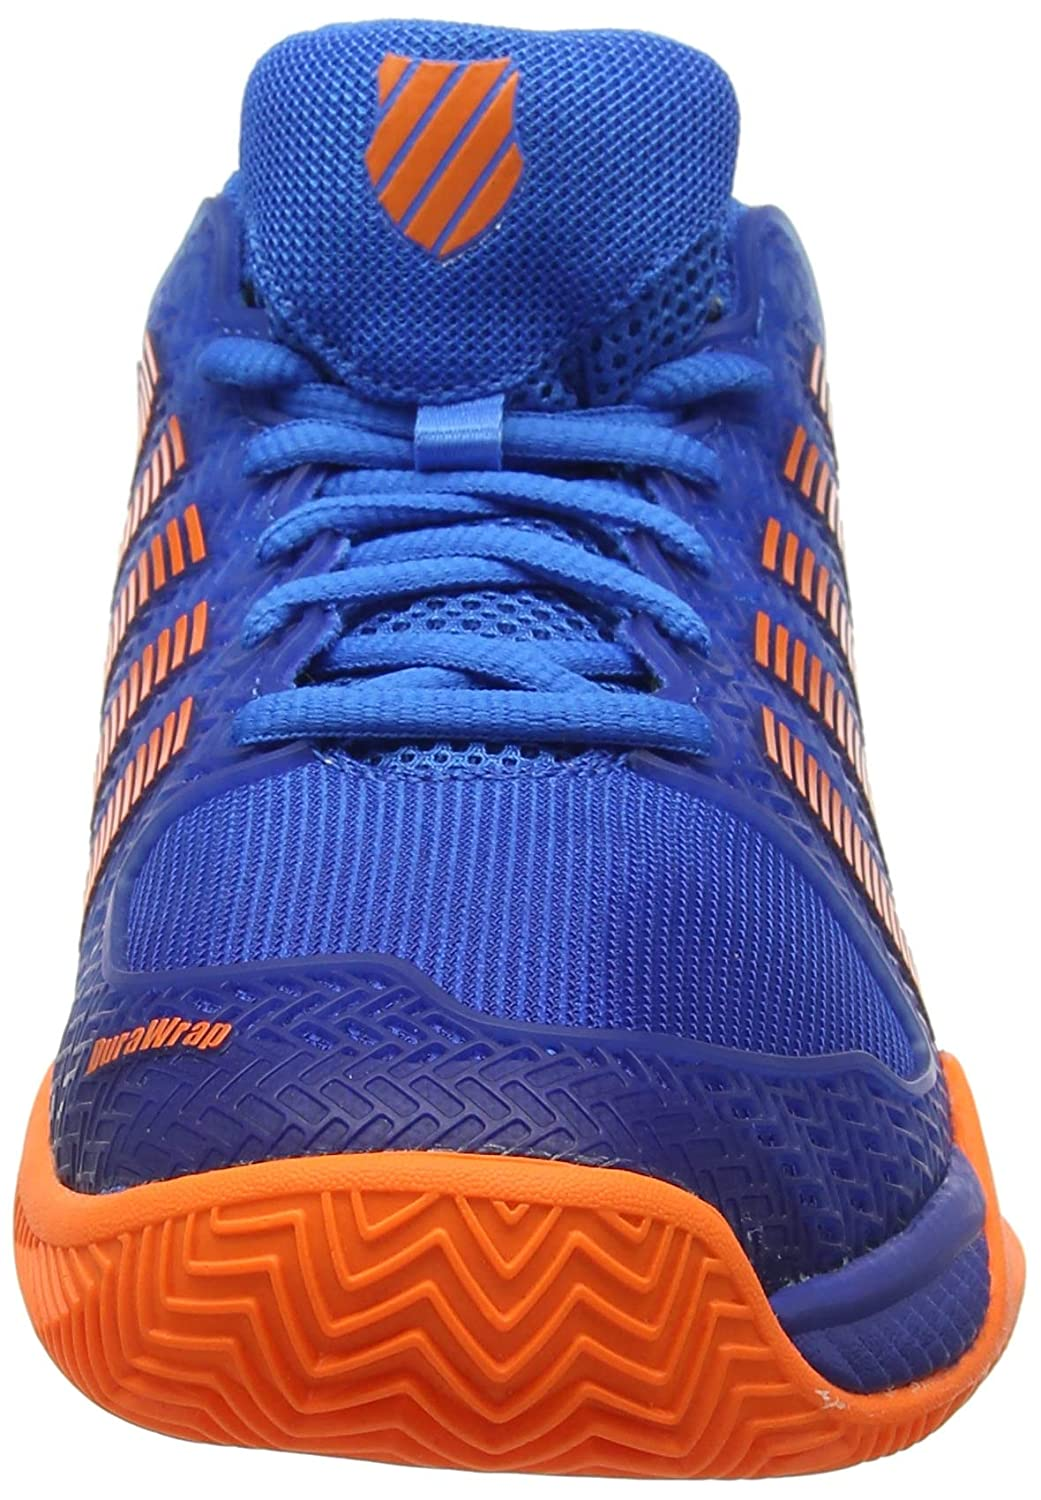 size 40 84f98 aaccf K-Swiss Performance Hypercourt Express HB, Chaussures de Tennis Homme, Bleu  (Brilliant Blue Neon Orange 427M), EU  Amazon.fr  Chaussures et Sacs